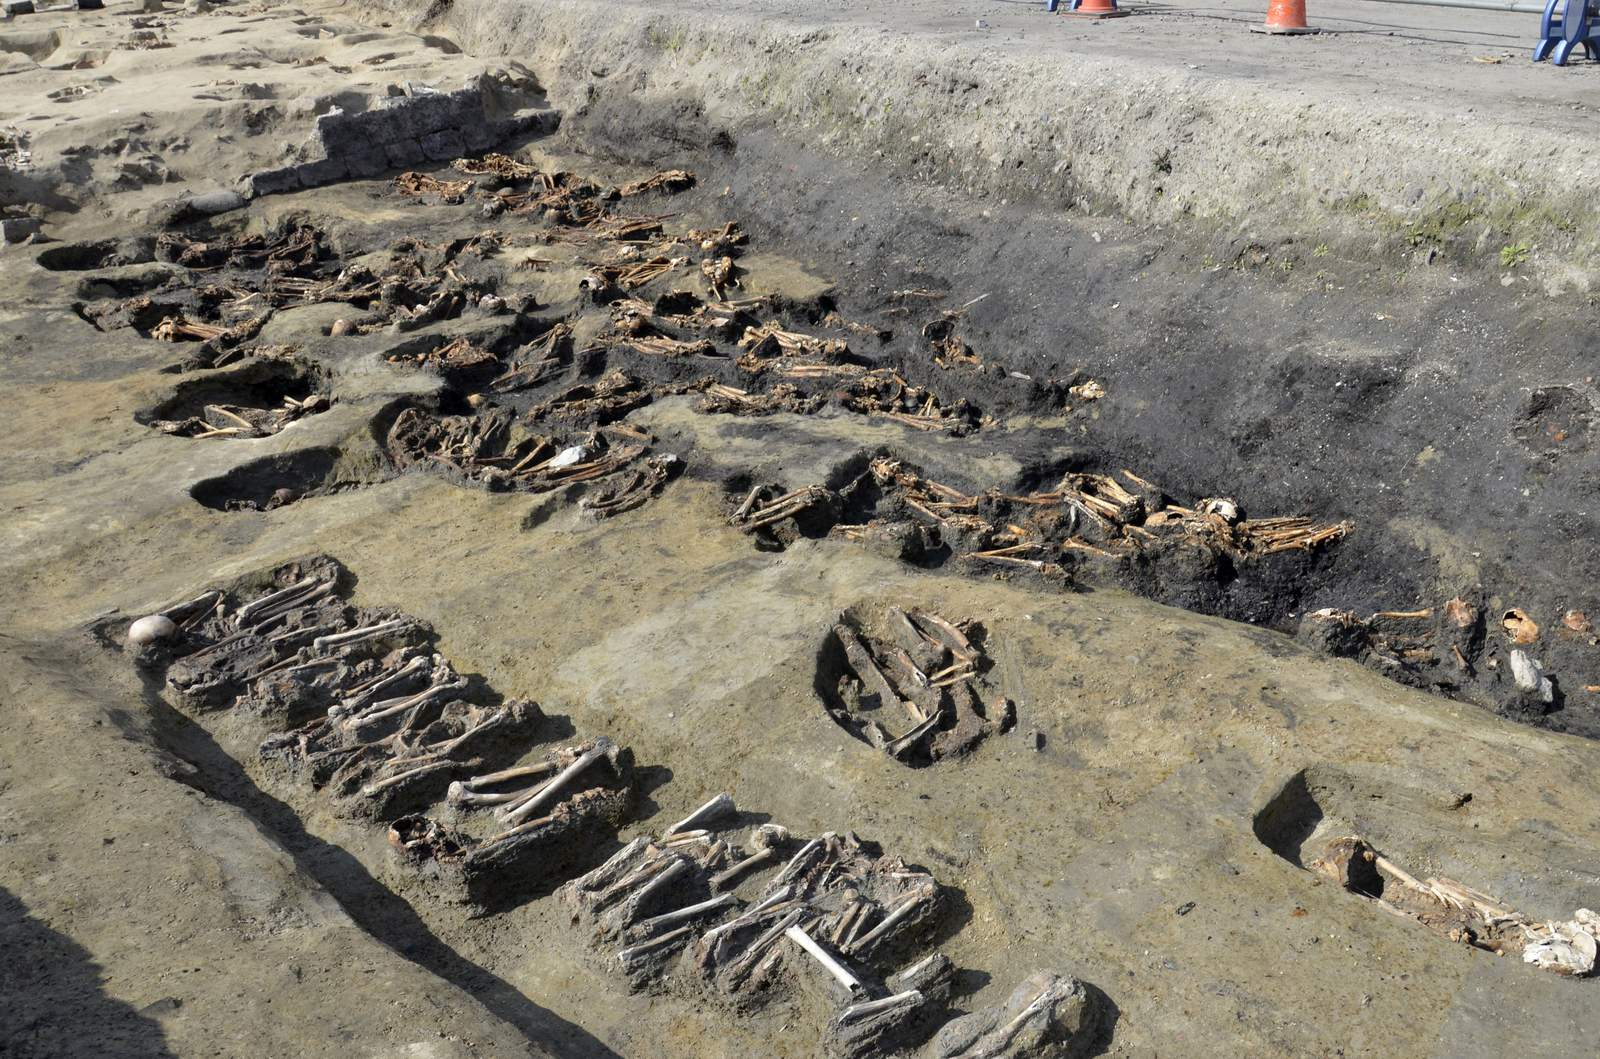 Remains dug from Japan mass grave suggest epidemic...